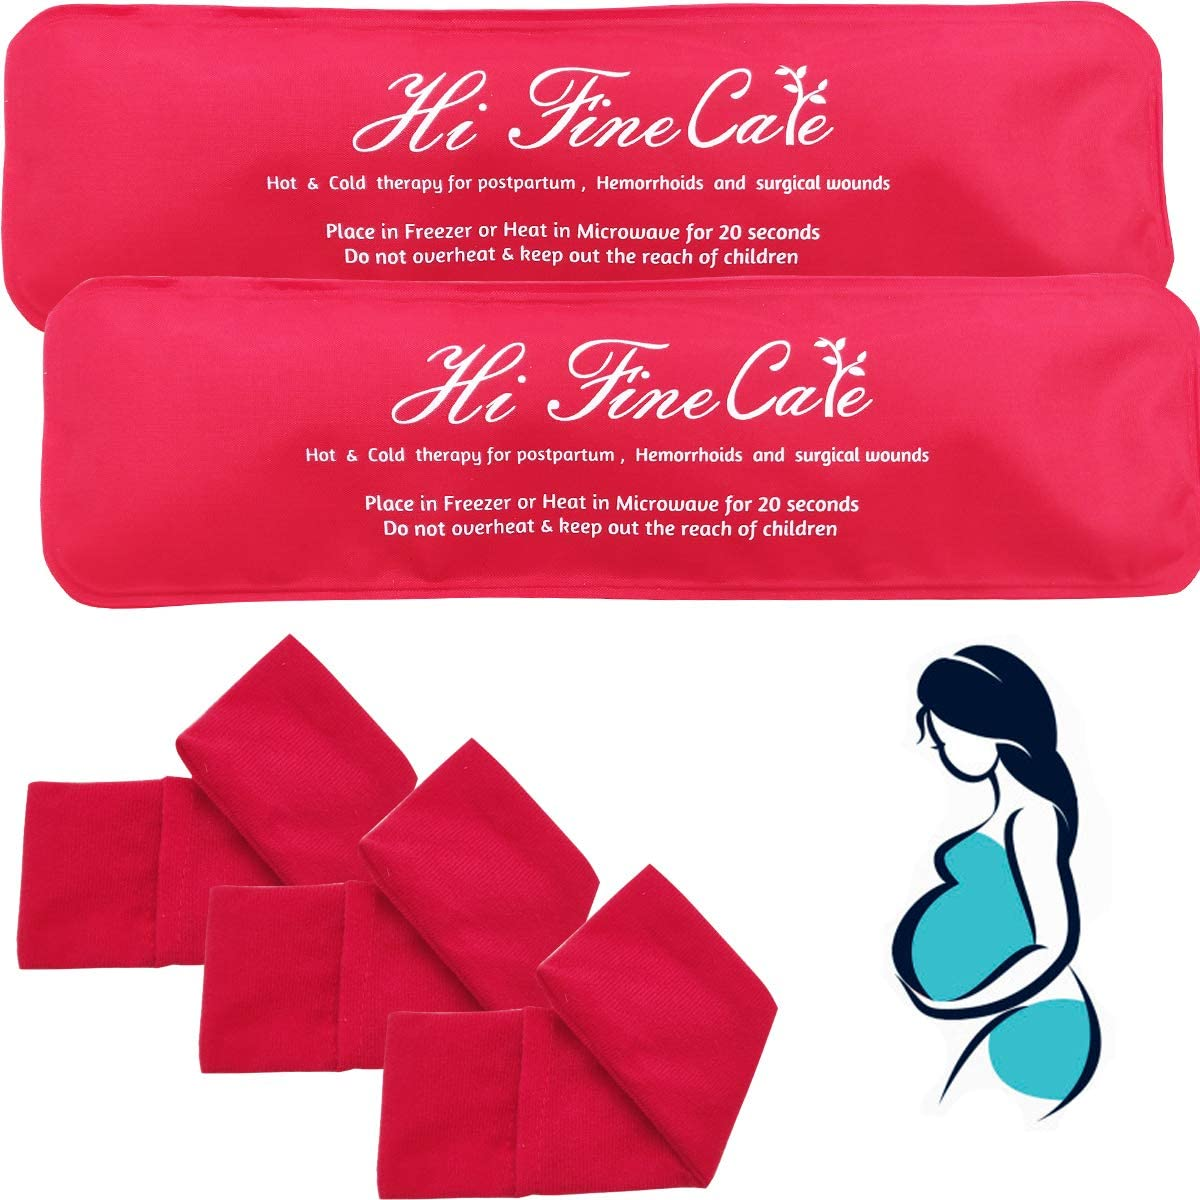 Reusable Perineal Cooling Pad for Postpartum & Hemorrhoid Pain Relief, Hot & Cold Packs for Women After Pregnancy and Delivery, Pack of 2 Gel Pads Plus 3 Washable Sleeves (red)